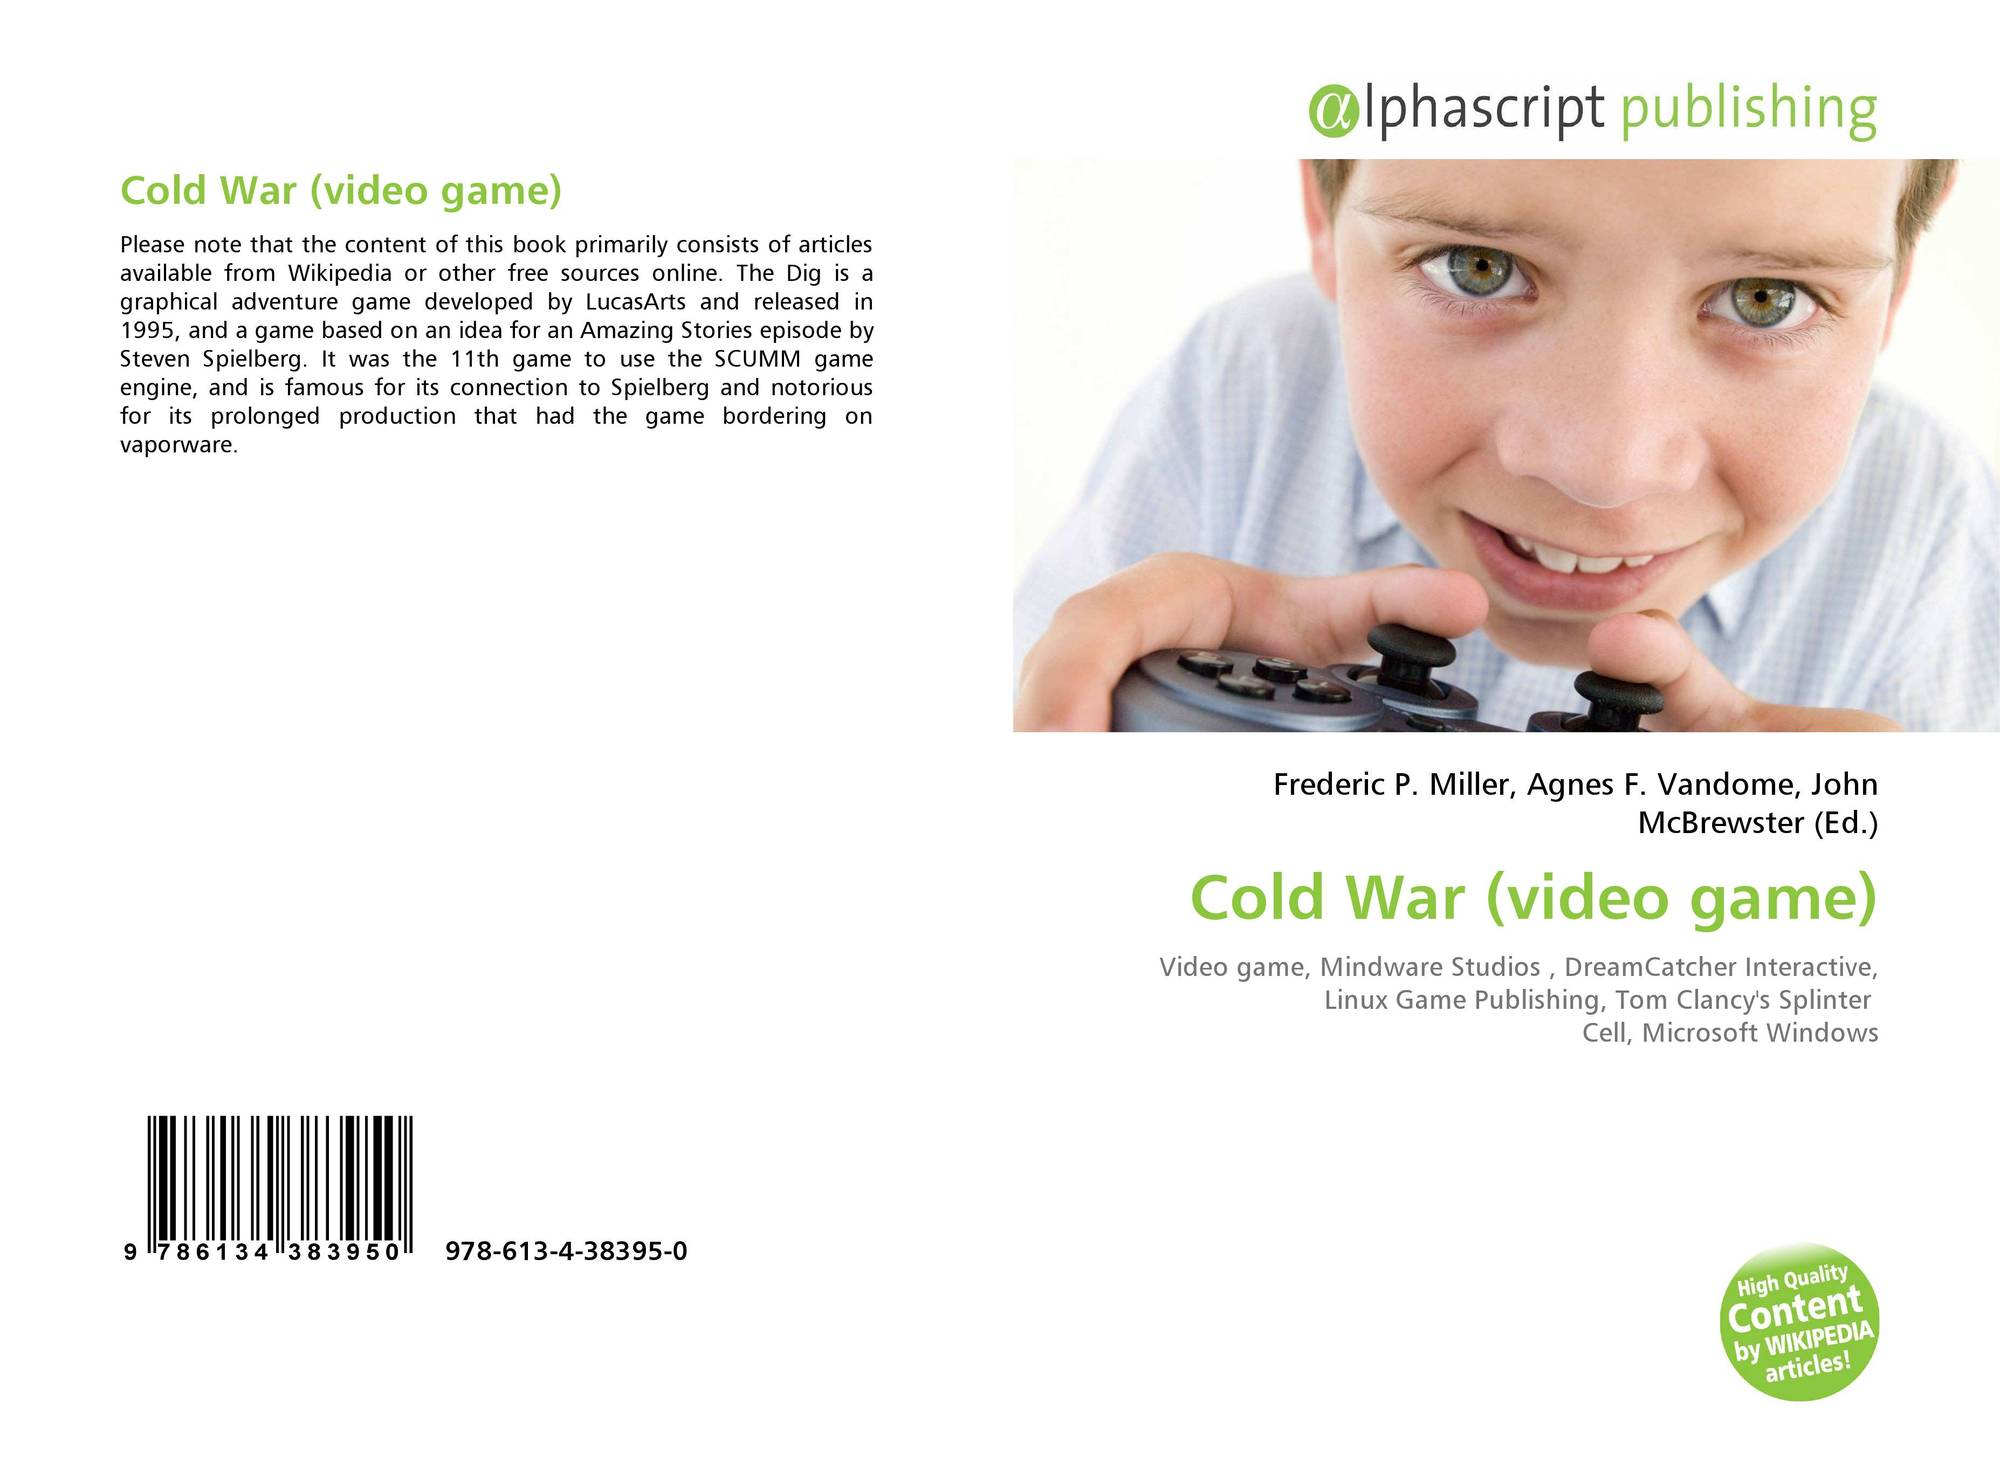 Cold War (video game), 978-613-4-38395-0, 6134383953